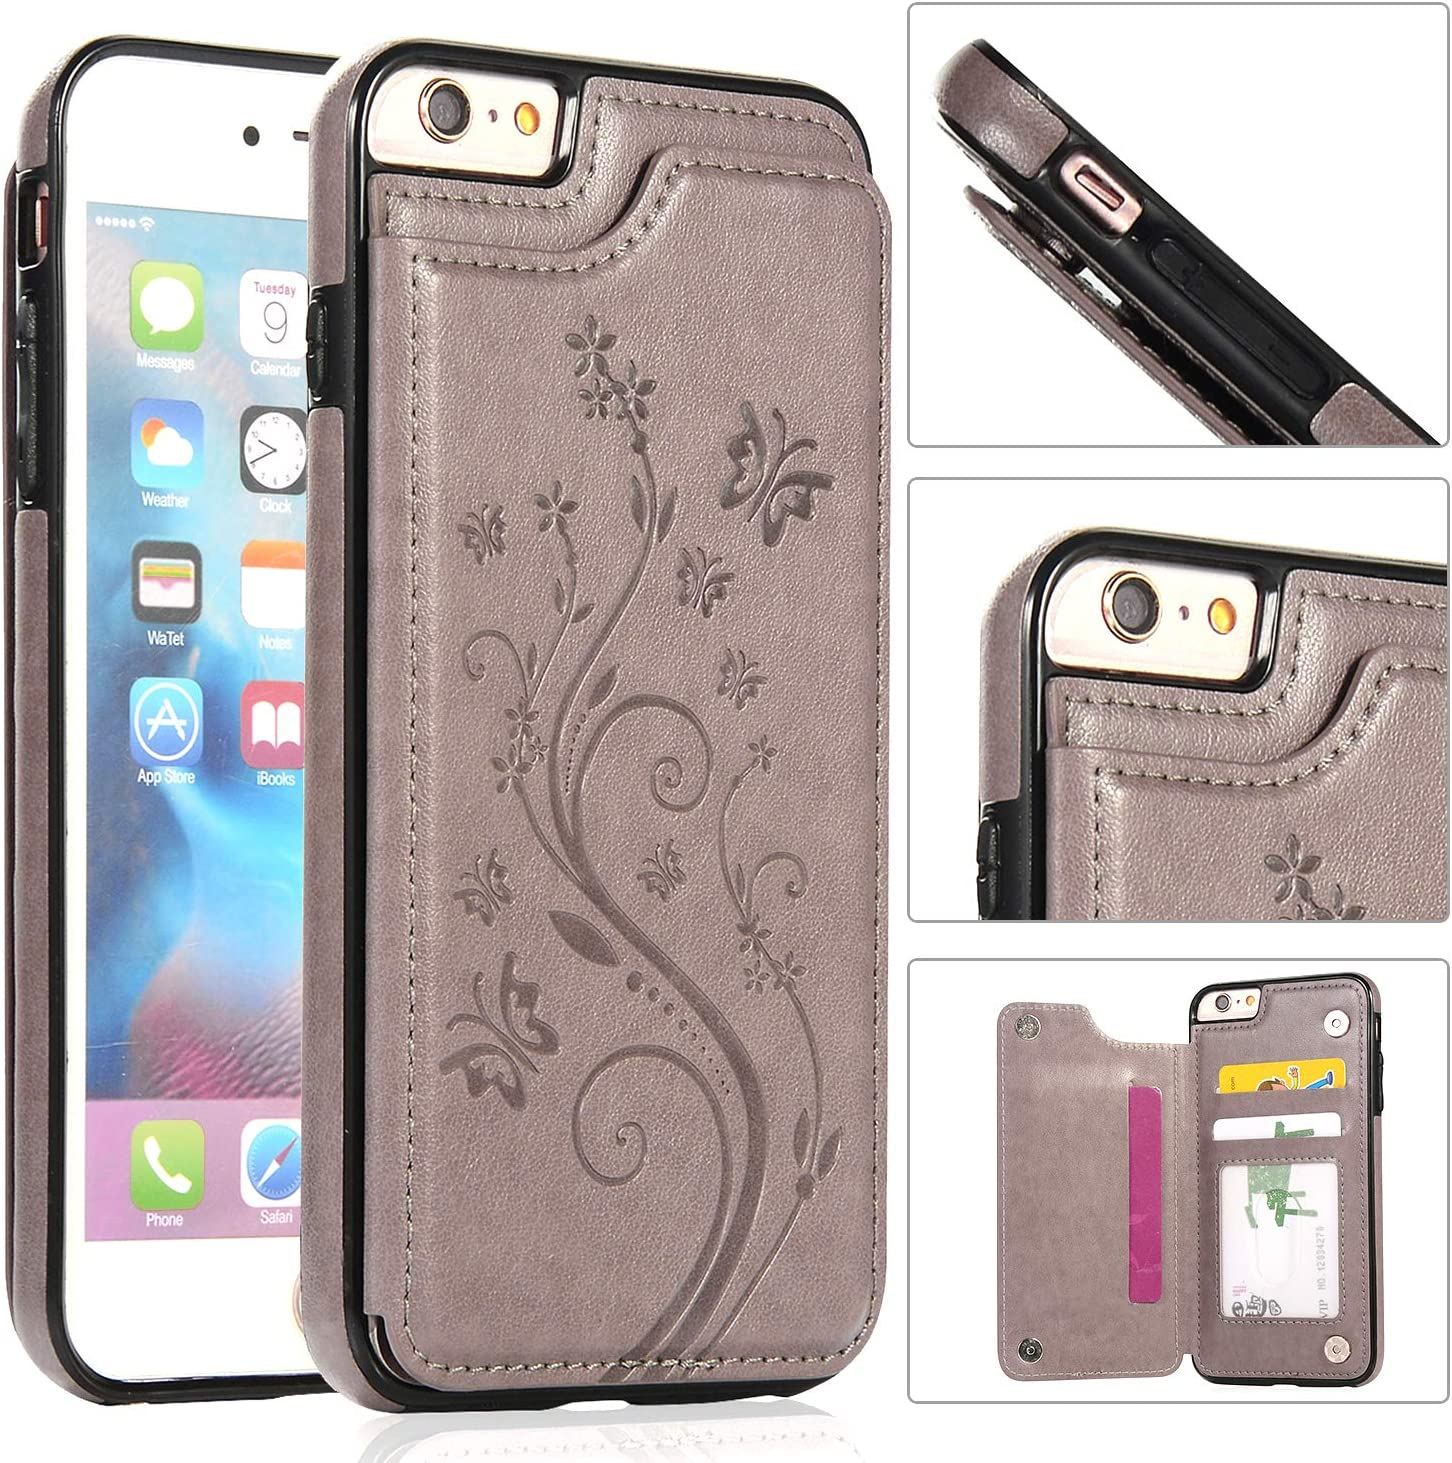 Back Wallet Case lowest price for San Francisco Mall iPhone 6 6S Emboss Stand Elegant QFFUN with